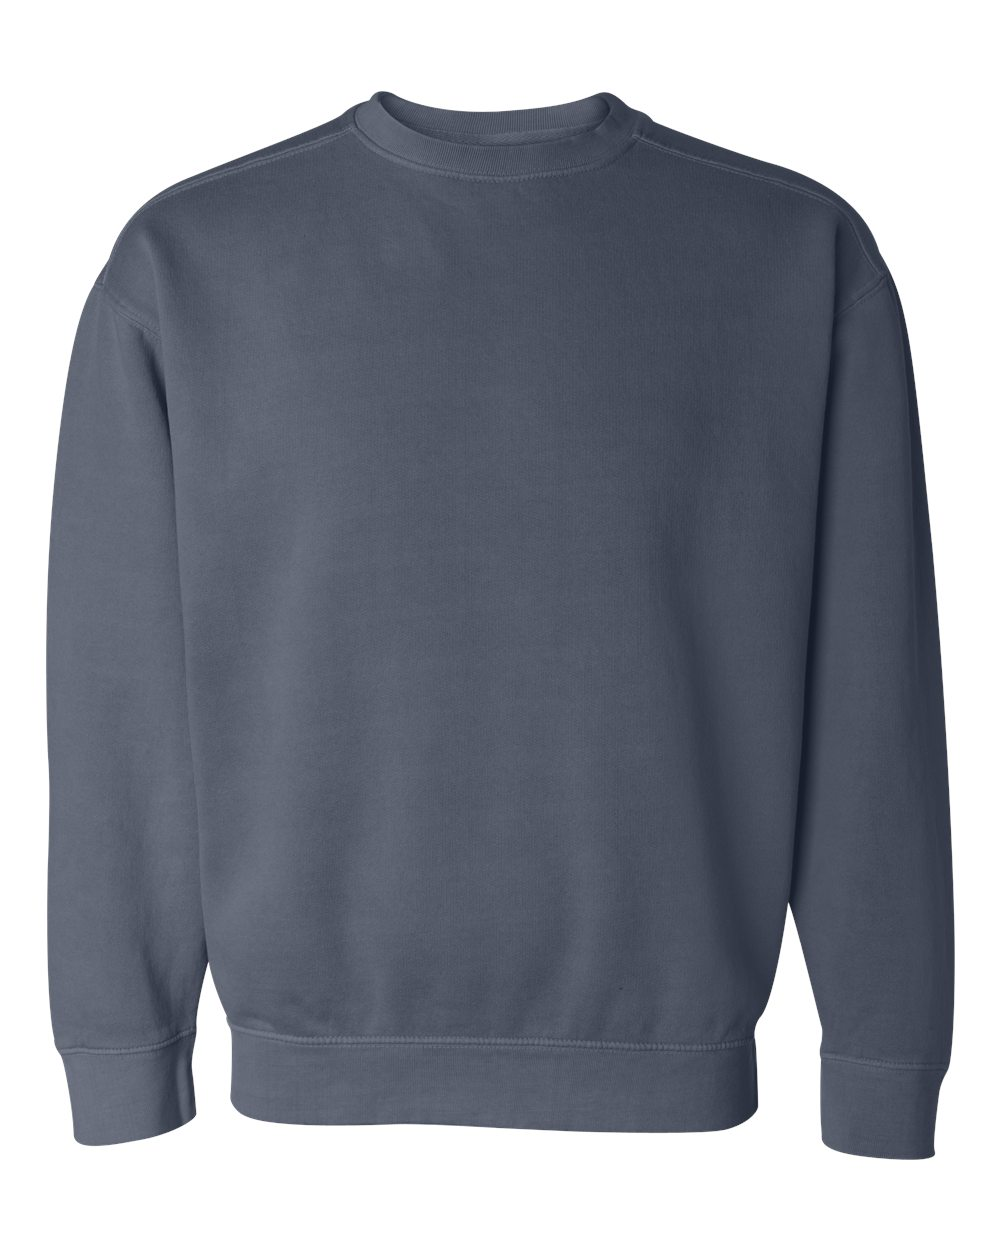 Comfort-Colors-Mens-Garment-Dyed-Ringspun-Crewneck-Sweatshirt-1566-up-to-3XL miniature 27